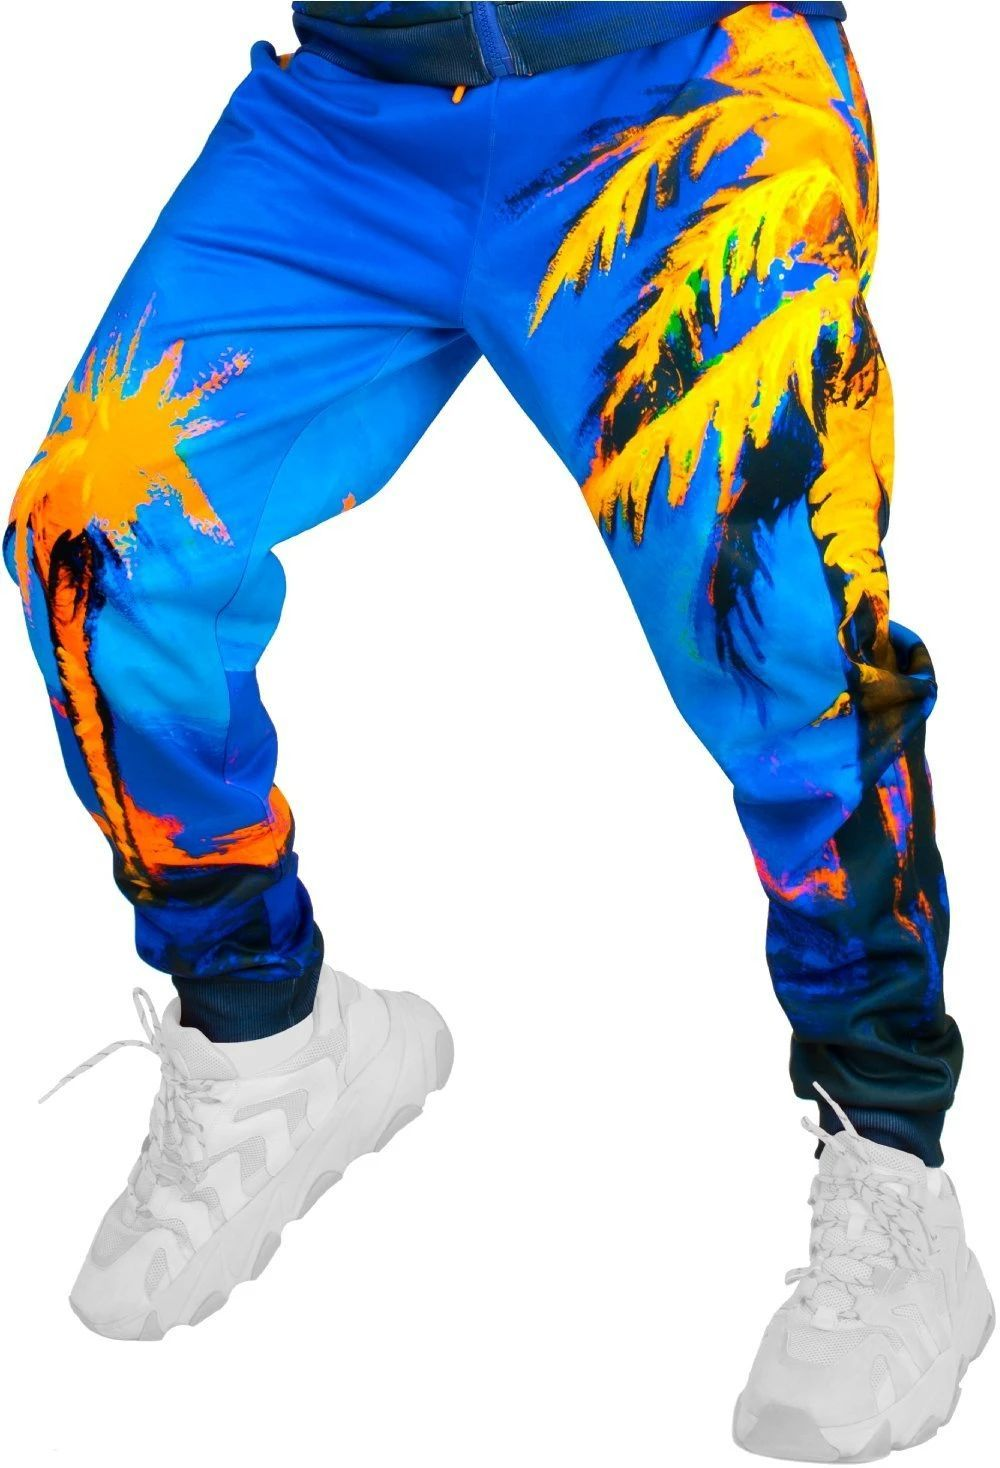 Blacklight Sweatpants Designed Blacklight Glow Hawaii Palms pm1